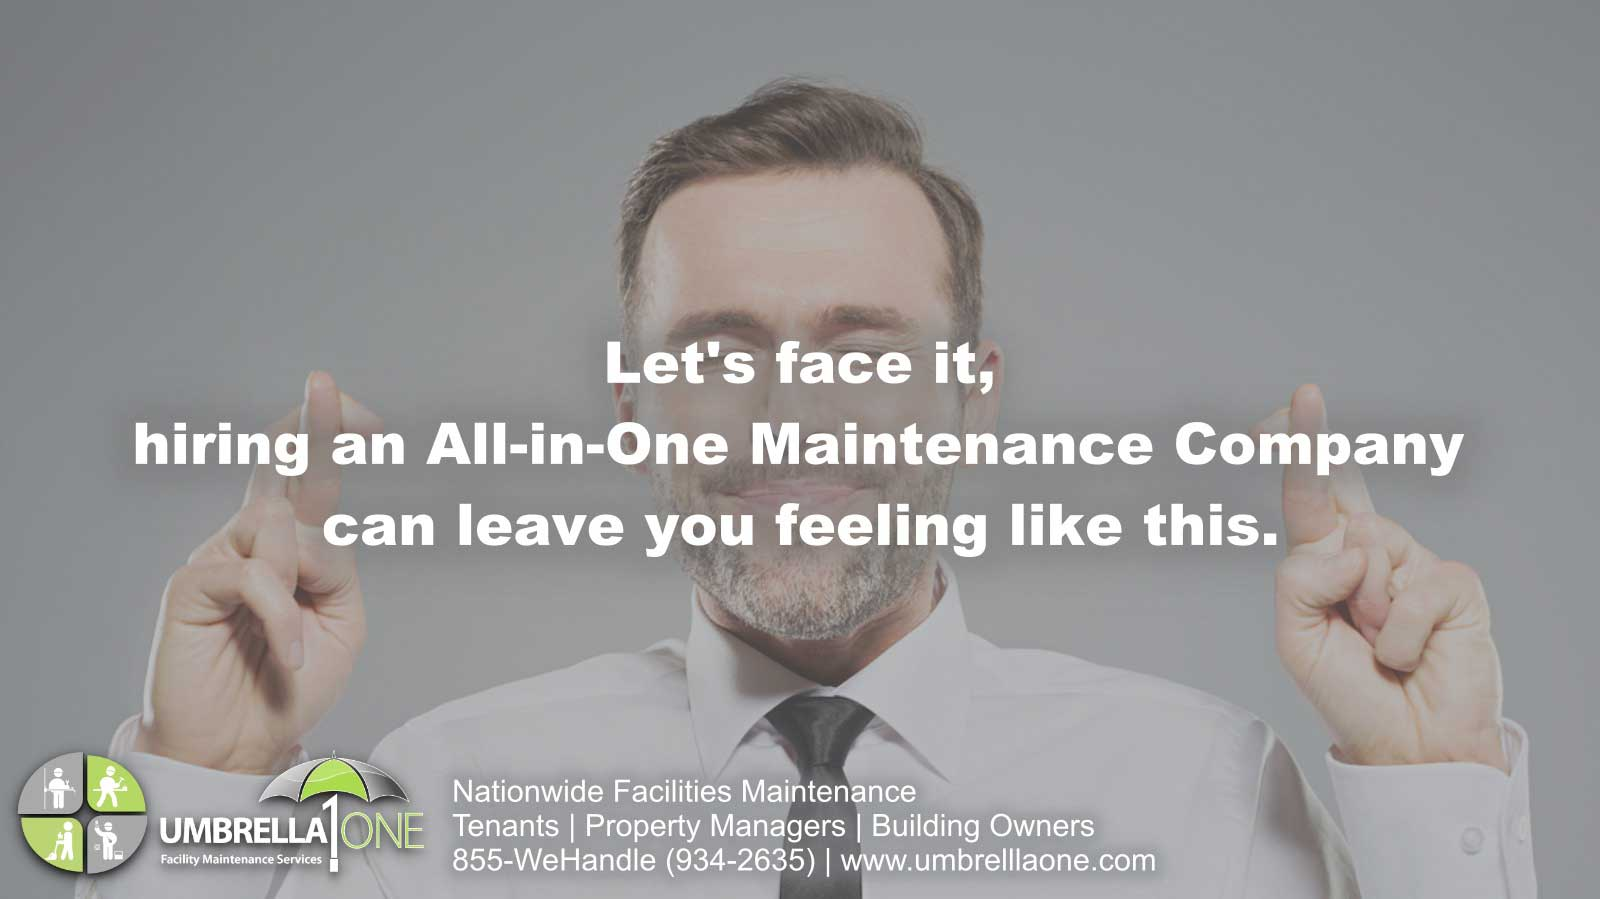 caption: let's face it, hiring an all in one maintenance company can leave you feeling like this (fingers crossed)